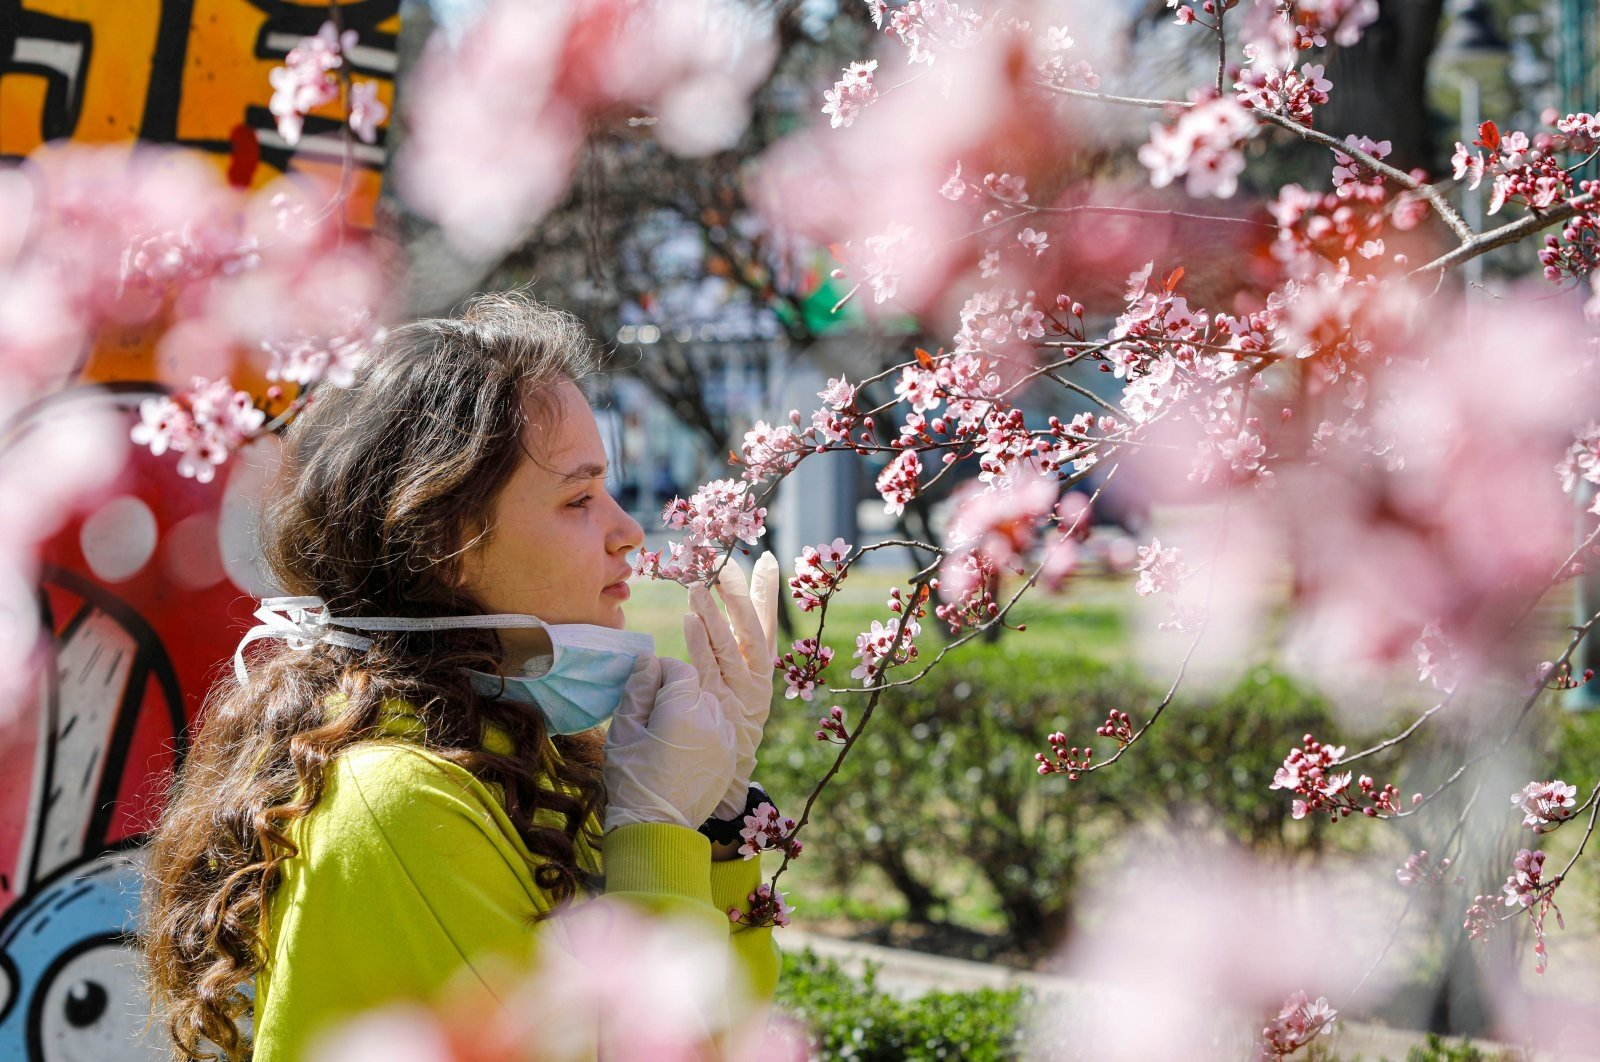 A girl removes her mask to smell the flowers on a blooming tree in Skopje, North Macedonia, March 20, 2020. (Reuters Photo)